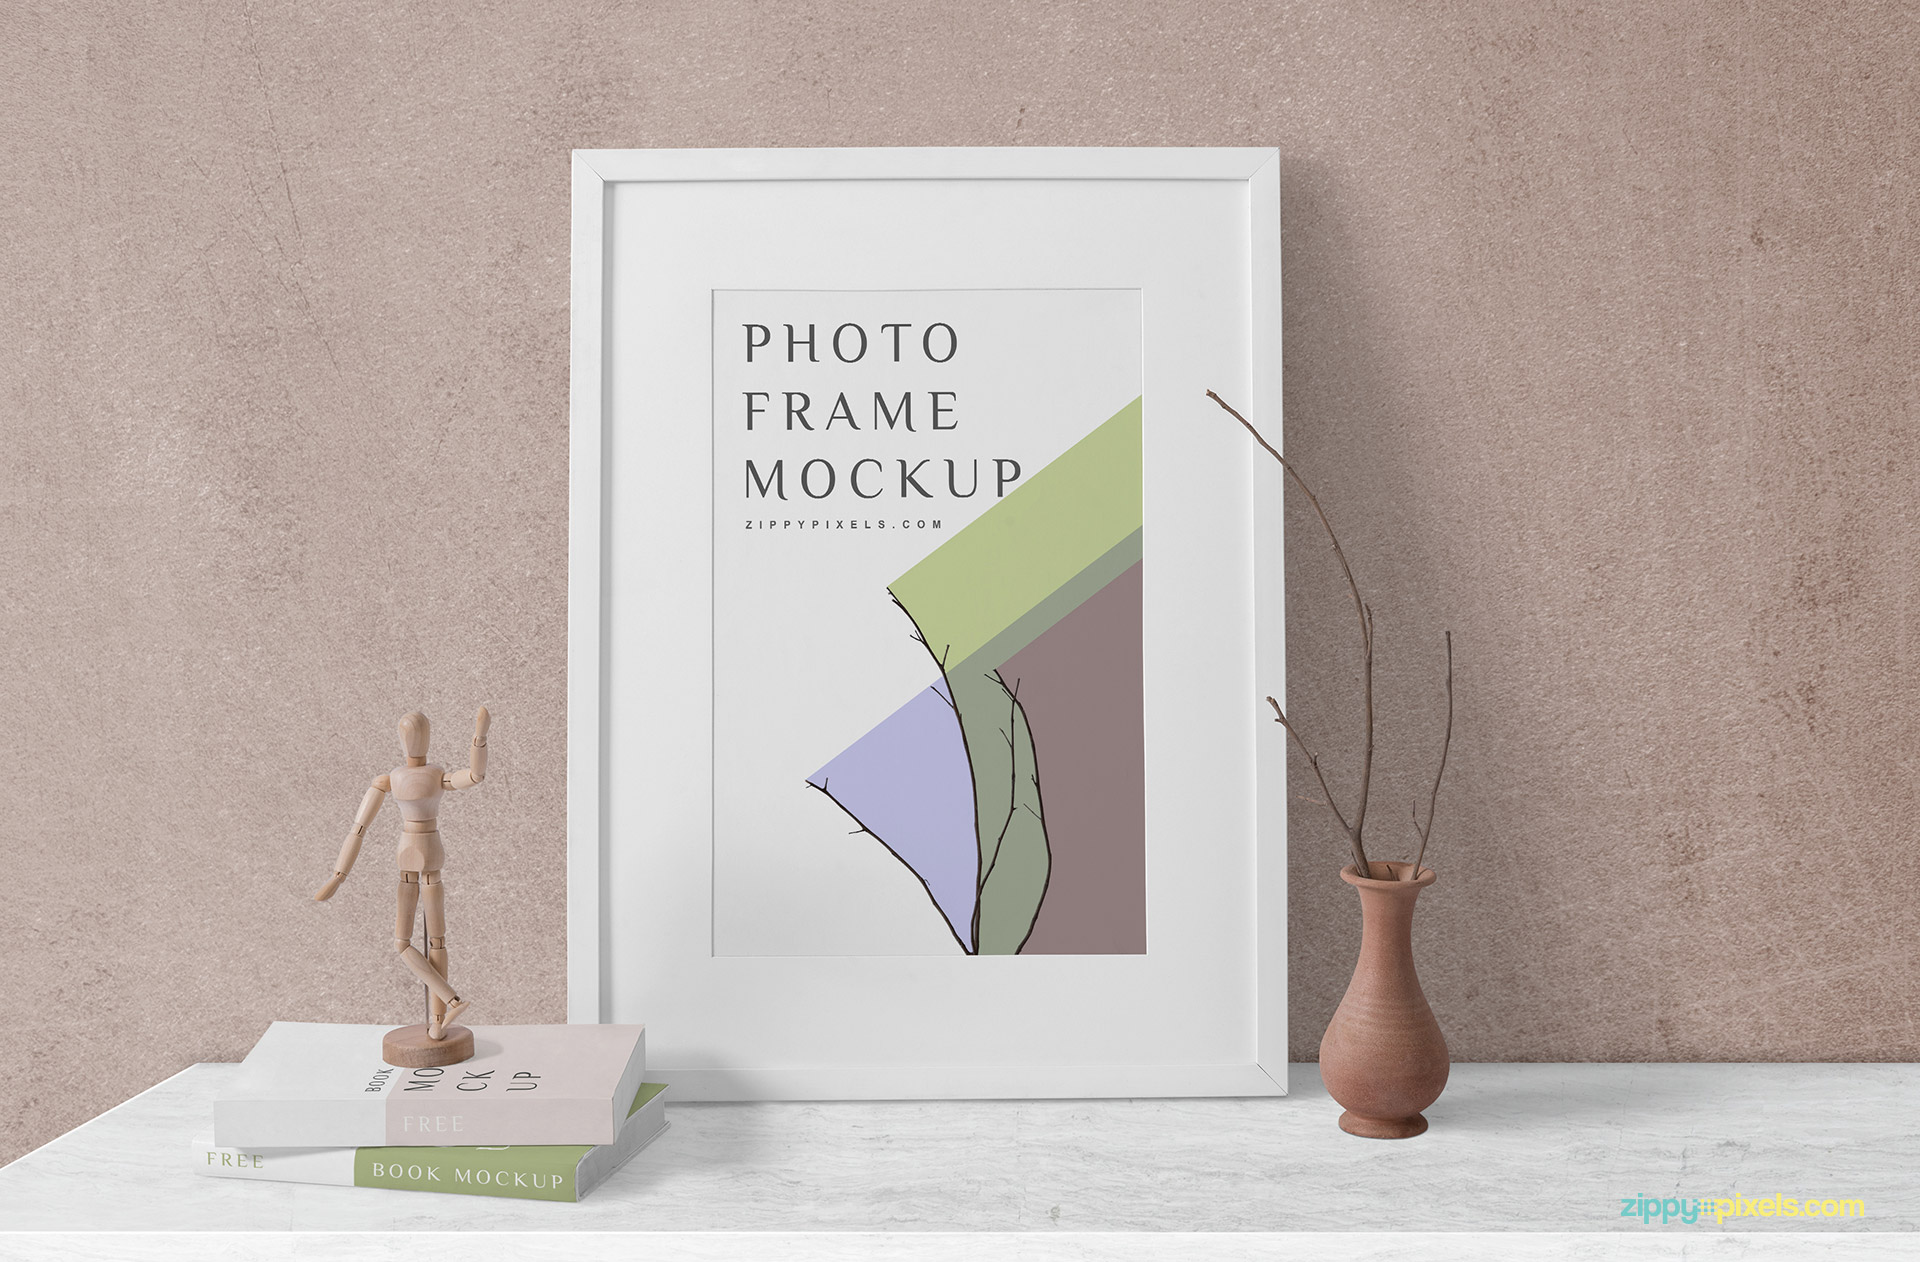 Wooden frame and book mockup for your design's presentation.